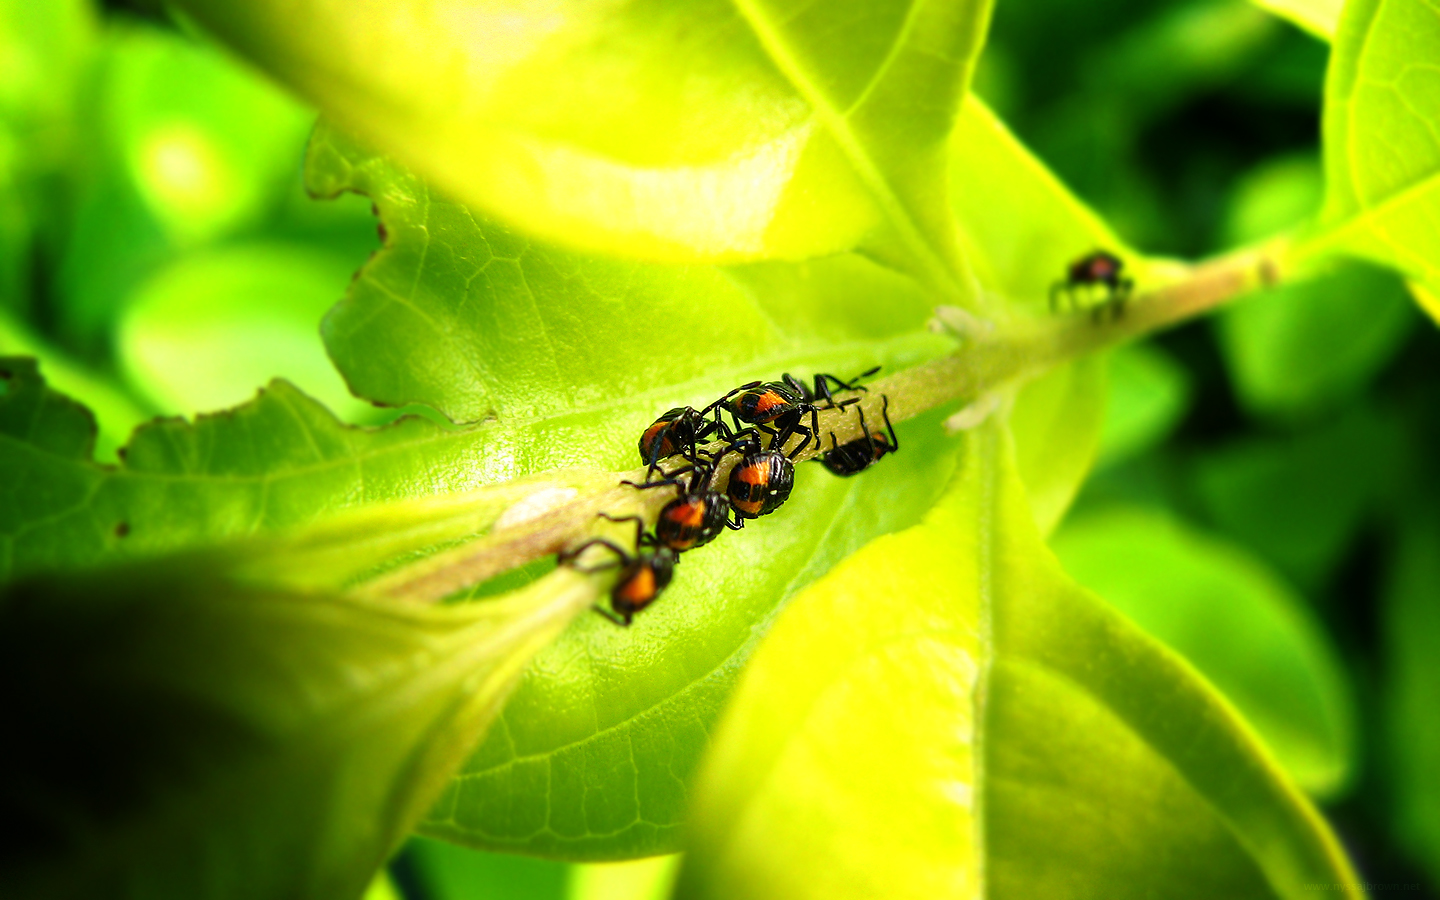 Free 3D Wallpapers Download: Insects hd wallpapers, insect ...